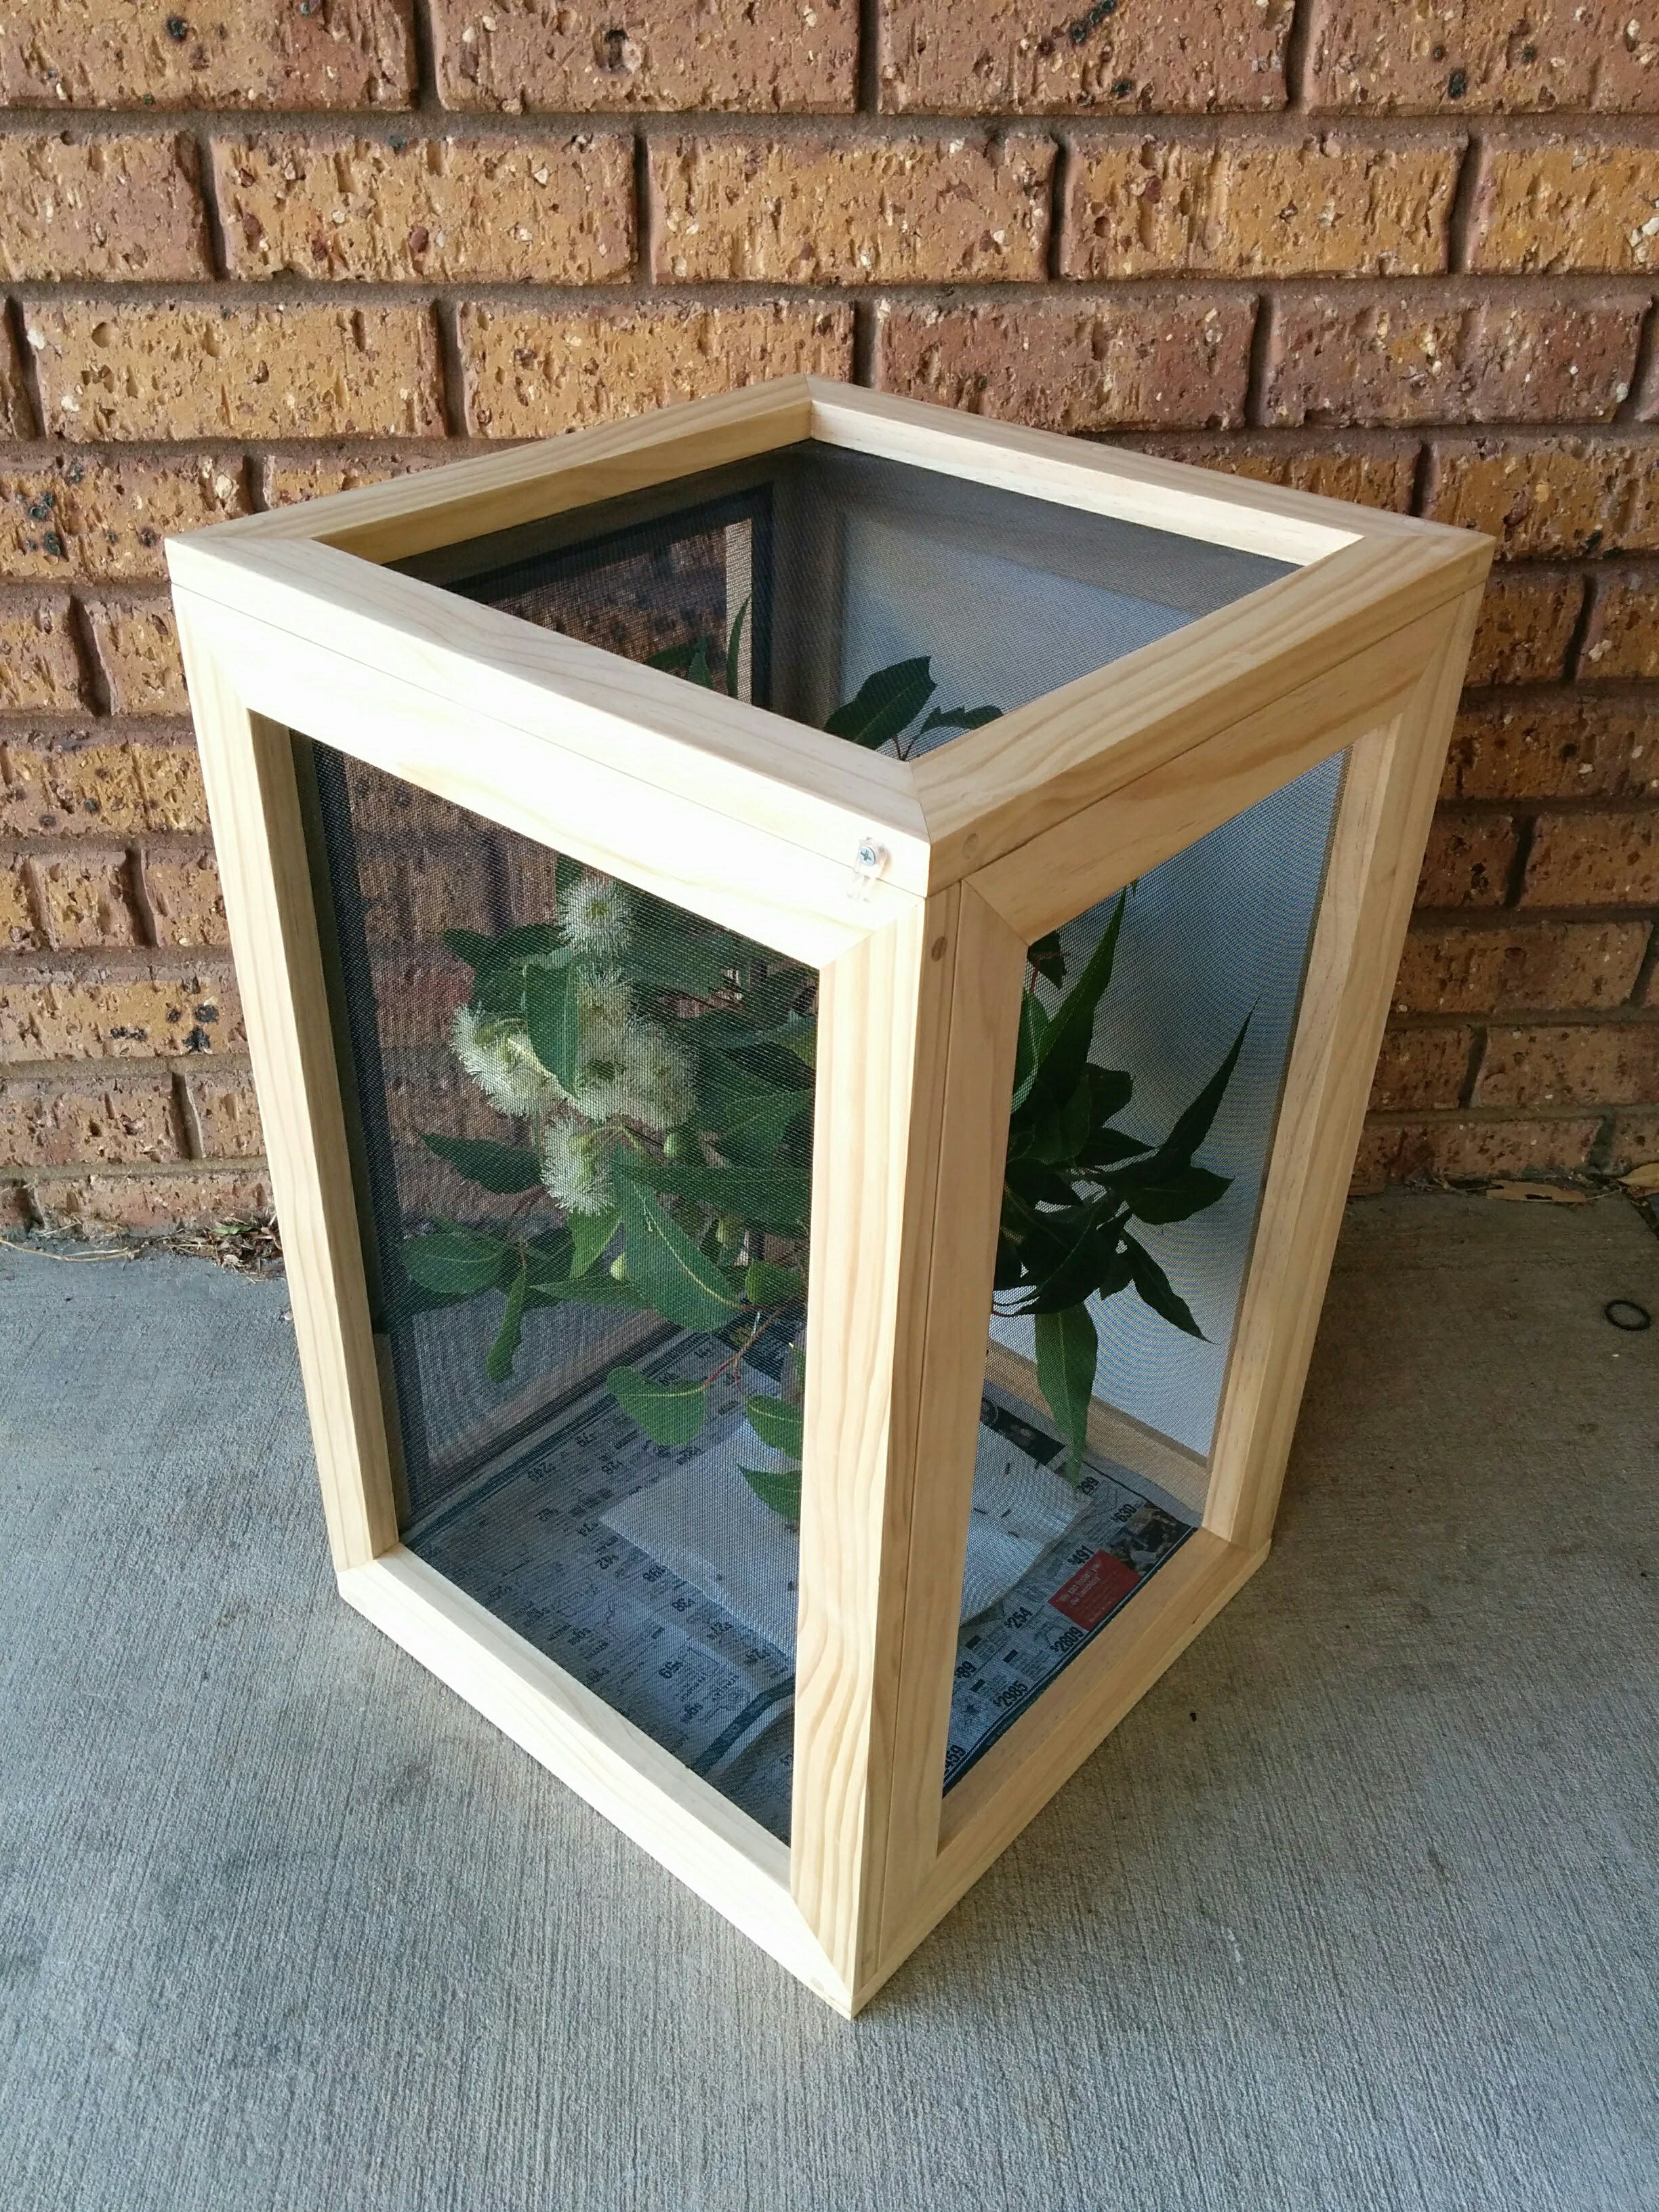 2019 handmade stick insect enclosure used to house